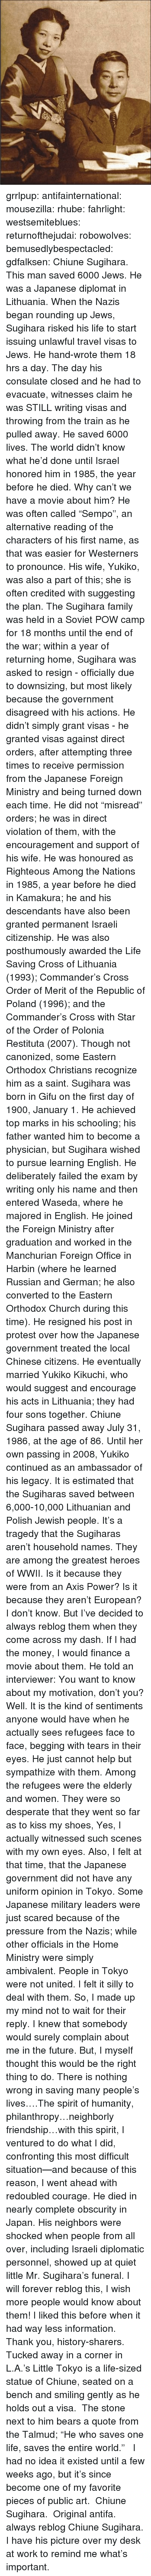 """the commander: grrlpup: antifainternational:  mousezilla:  rhube:  fahrlight:  westsemiteblues:  returnofthejudai:  robowolves:  bemusedlybespectacled:  gdfalksen:  Chiune Sugihara. This man saved 6000 Jews. He was a Japanese diplomat in Lithuania. When the Nazis began rounding up Jews, Sugihara risked his life to start issuing unlawful travel visas to Jews. He hand-wrote them 18 hrs a day. The day his consulate closed and he had to evacuate, witnesses claim he was STILL writing visas and throwing from the train as he pulled away. He saved 6000 lives. The world didn't know what he'd done until Israel honored him in 1985, the year before he died.  Why can't we have a movie about him?  He was often called """"Sempo"""", an alternative reading of the characters of his first name, as that was easier for Westerners to pronounce. His wife, Yukiko, was also a part of this; she is often credited with suggesting the plan. The Sugihara family was held in a Soviet POW camp for 18 months until the end of the war; within a year of returning home, Sugihara was asked to resign - officially due to downsizing, but most likely because the government disagreed with his actions. He didn't simply grant visas - he granted visas against direct orders, after attempting three times to receive permission from the Japanese Foreign Ministry and being turned down each time. He did not """"misread"""" orders; he was in direct violation of them, with the encouragement and support of his wife. He was honoured as Righteous Among the Nations in 1985, a year before he died in Kamakura; he and his descendants have also been granted permanent Israeli citizenship. He was also posthumously awarded the Life Saving Cross of Lithuania (1993); Commander's Cross Order of Merit of the Republic of Poland (1996); and the Commander's Cross with Star of the Order of Polonia Restituta (2007). Though not canonized, some Eastern Orthodox Christians recognize him as a saint. Sugihara was born in Gifu on the first day of 1900, Jan"""